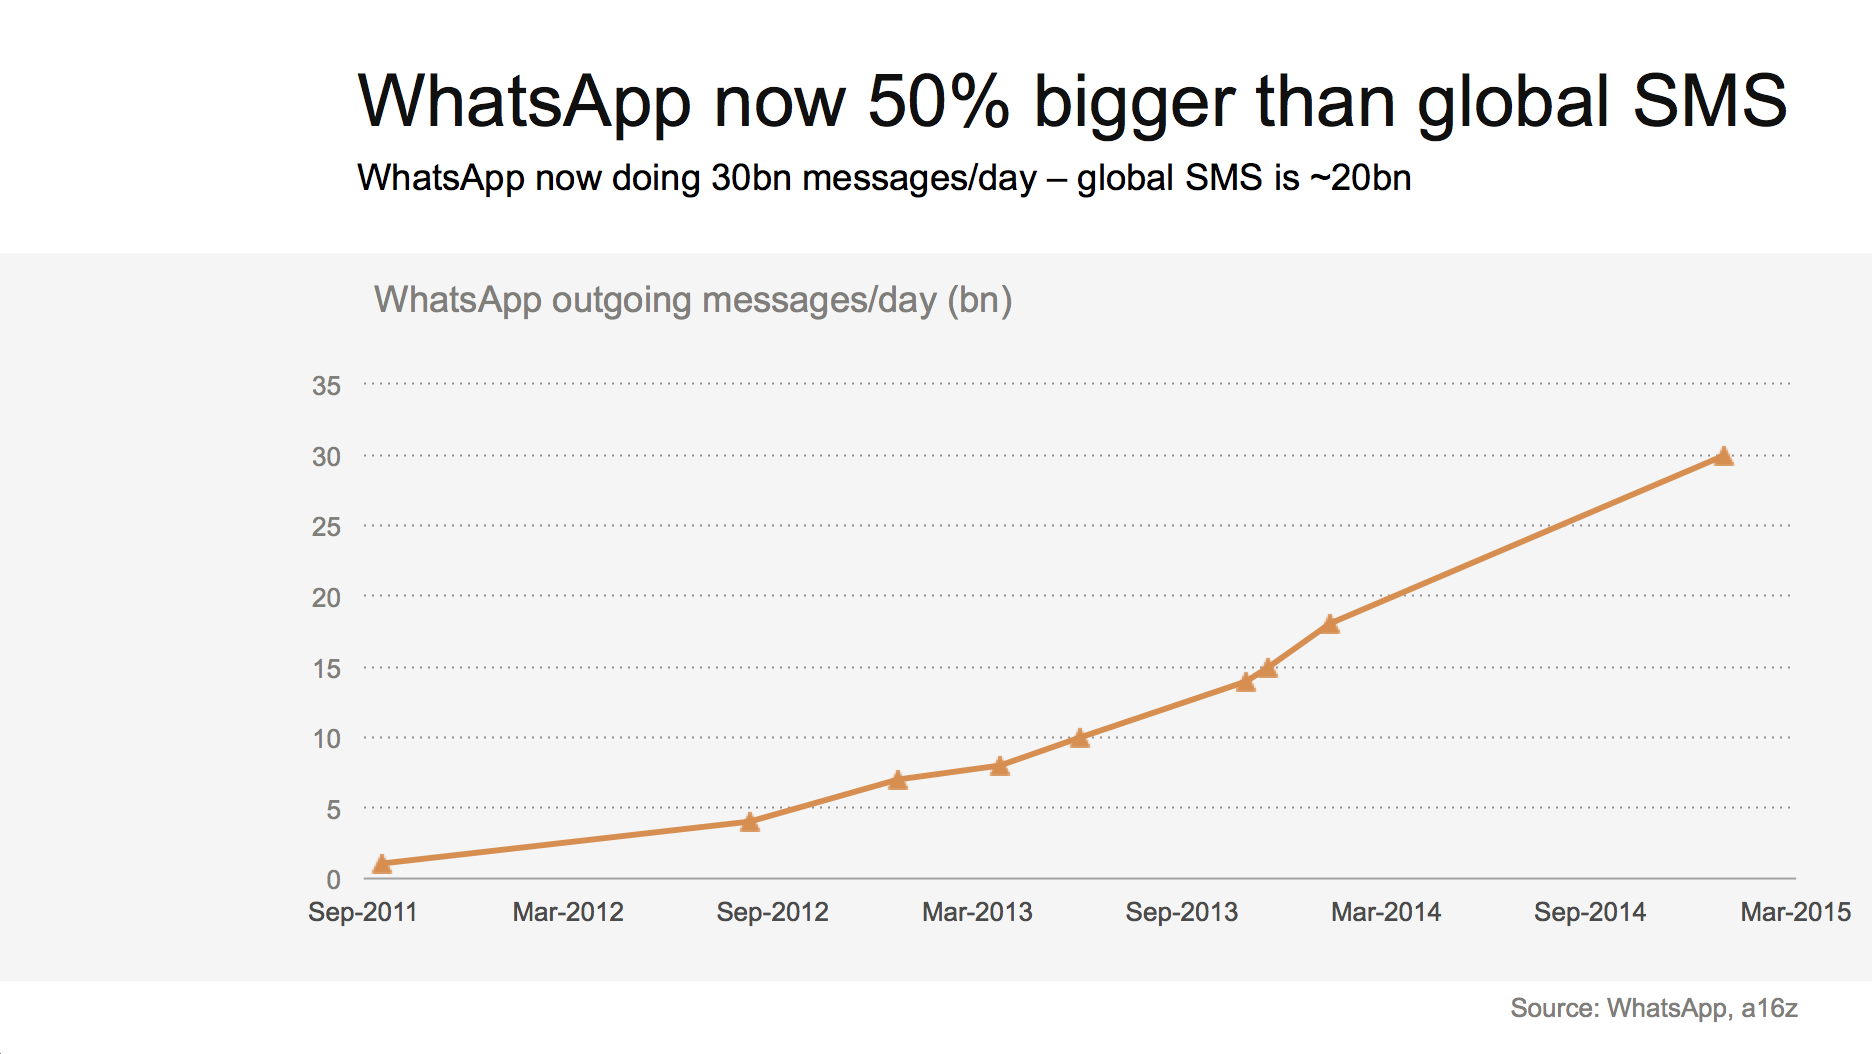 WhatsApp sails past SMS, but where does messaging go next